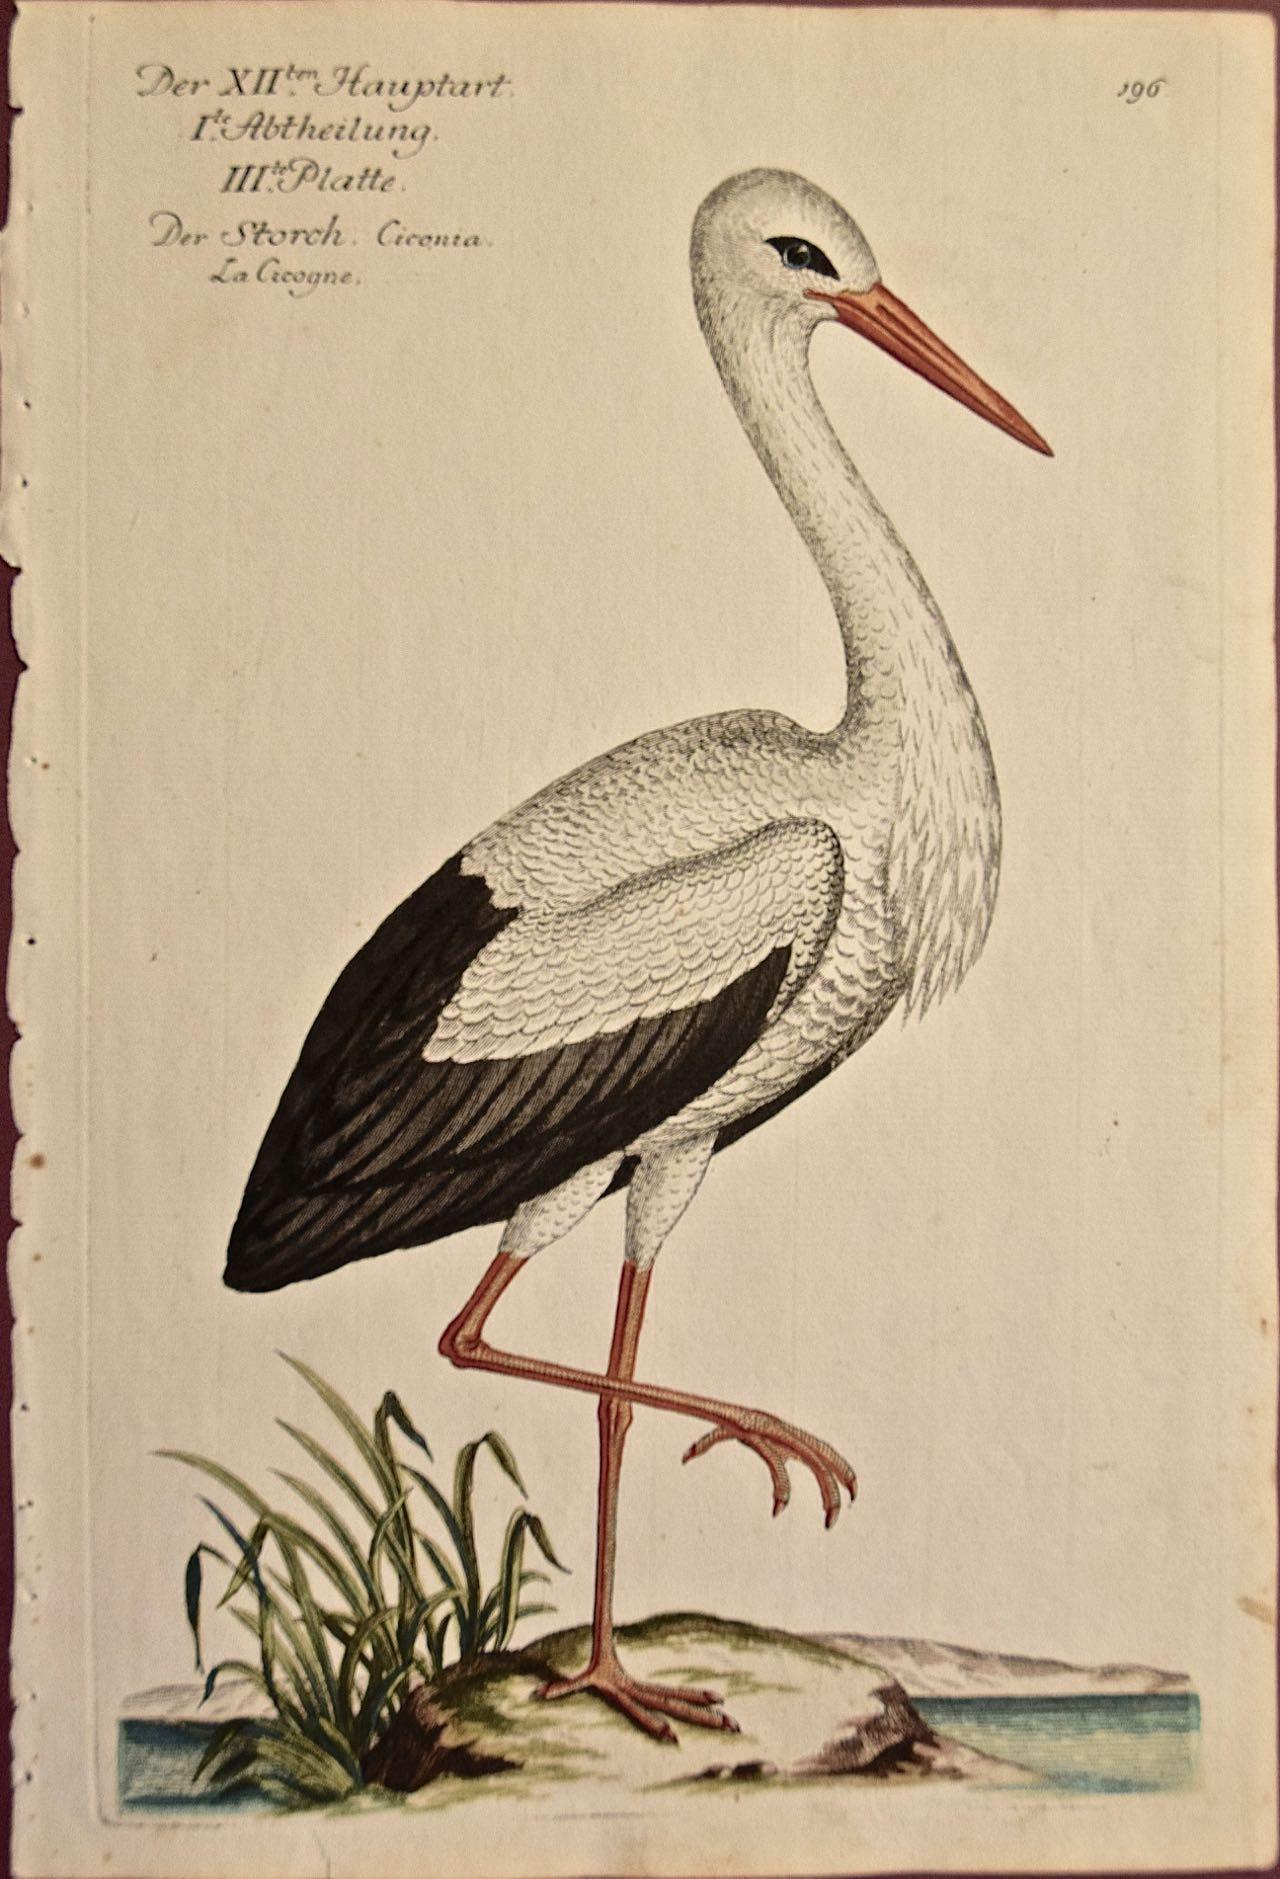 """An 18th Century Hand-colored Frisch Engraving """"Storch Ciconia"""" or White Stork"""